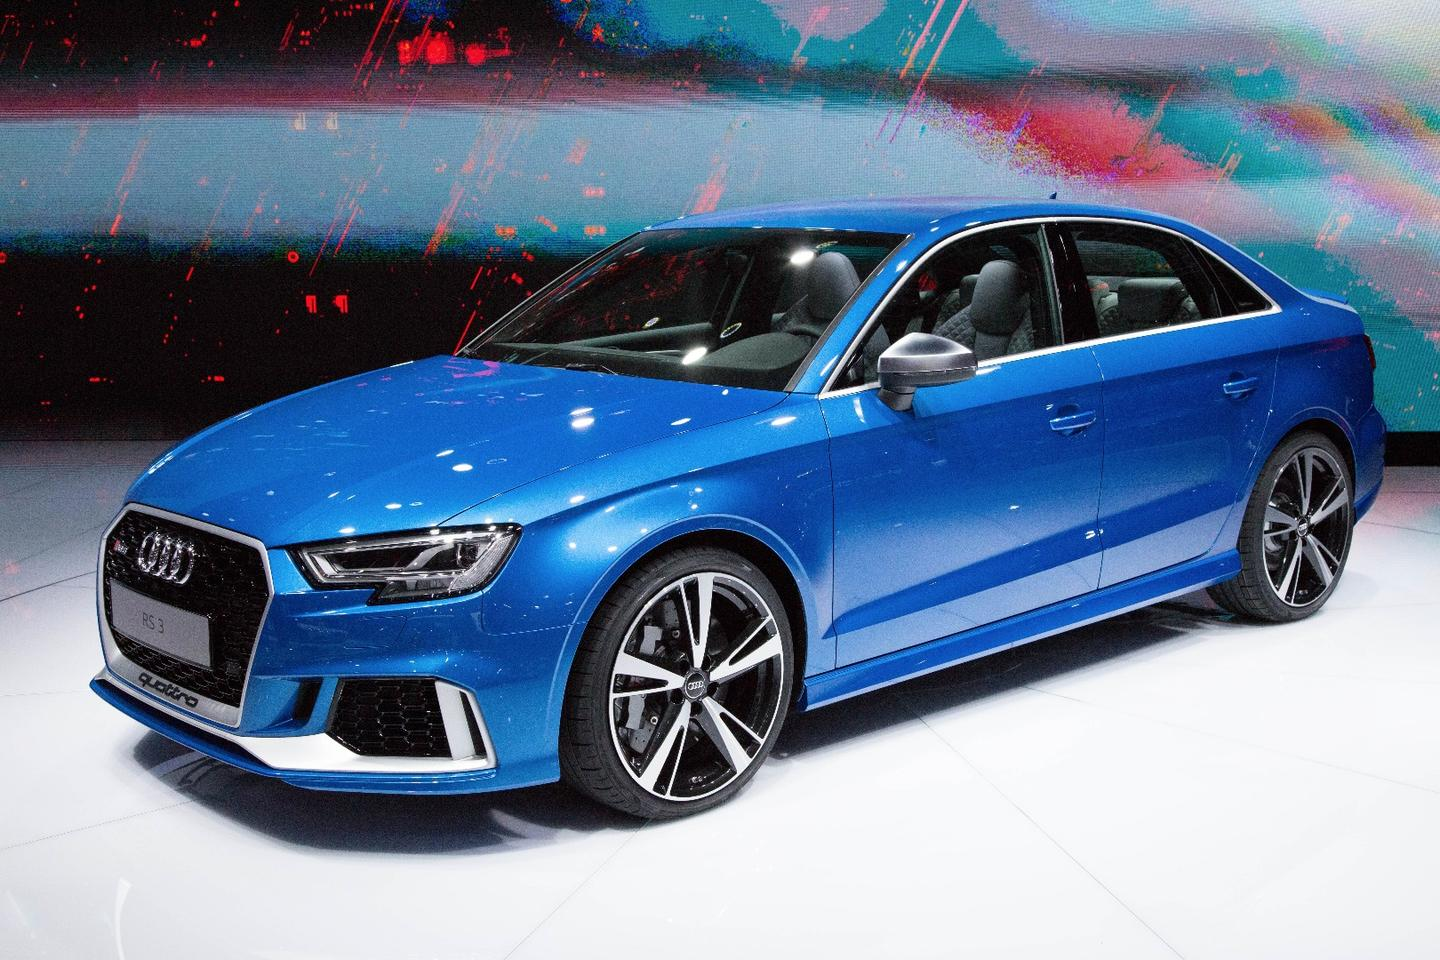 The Audi RS3 sedan sports a 394 hp five-cylinder turbo engine